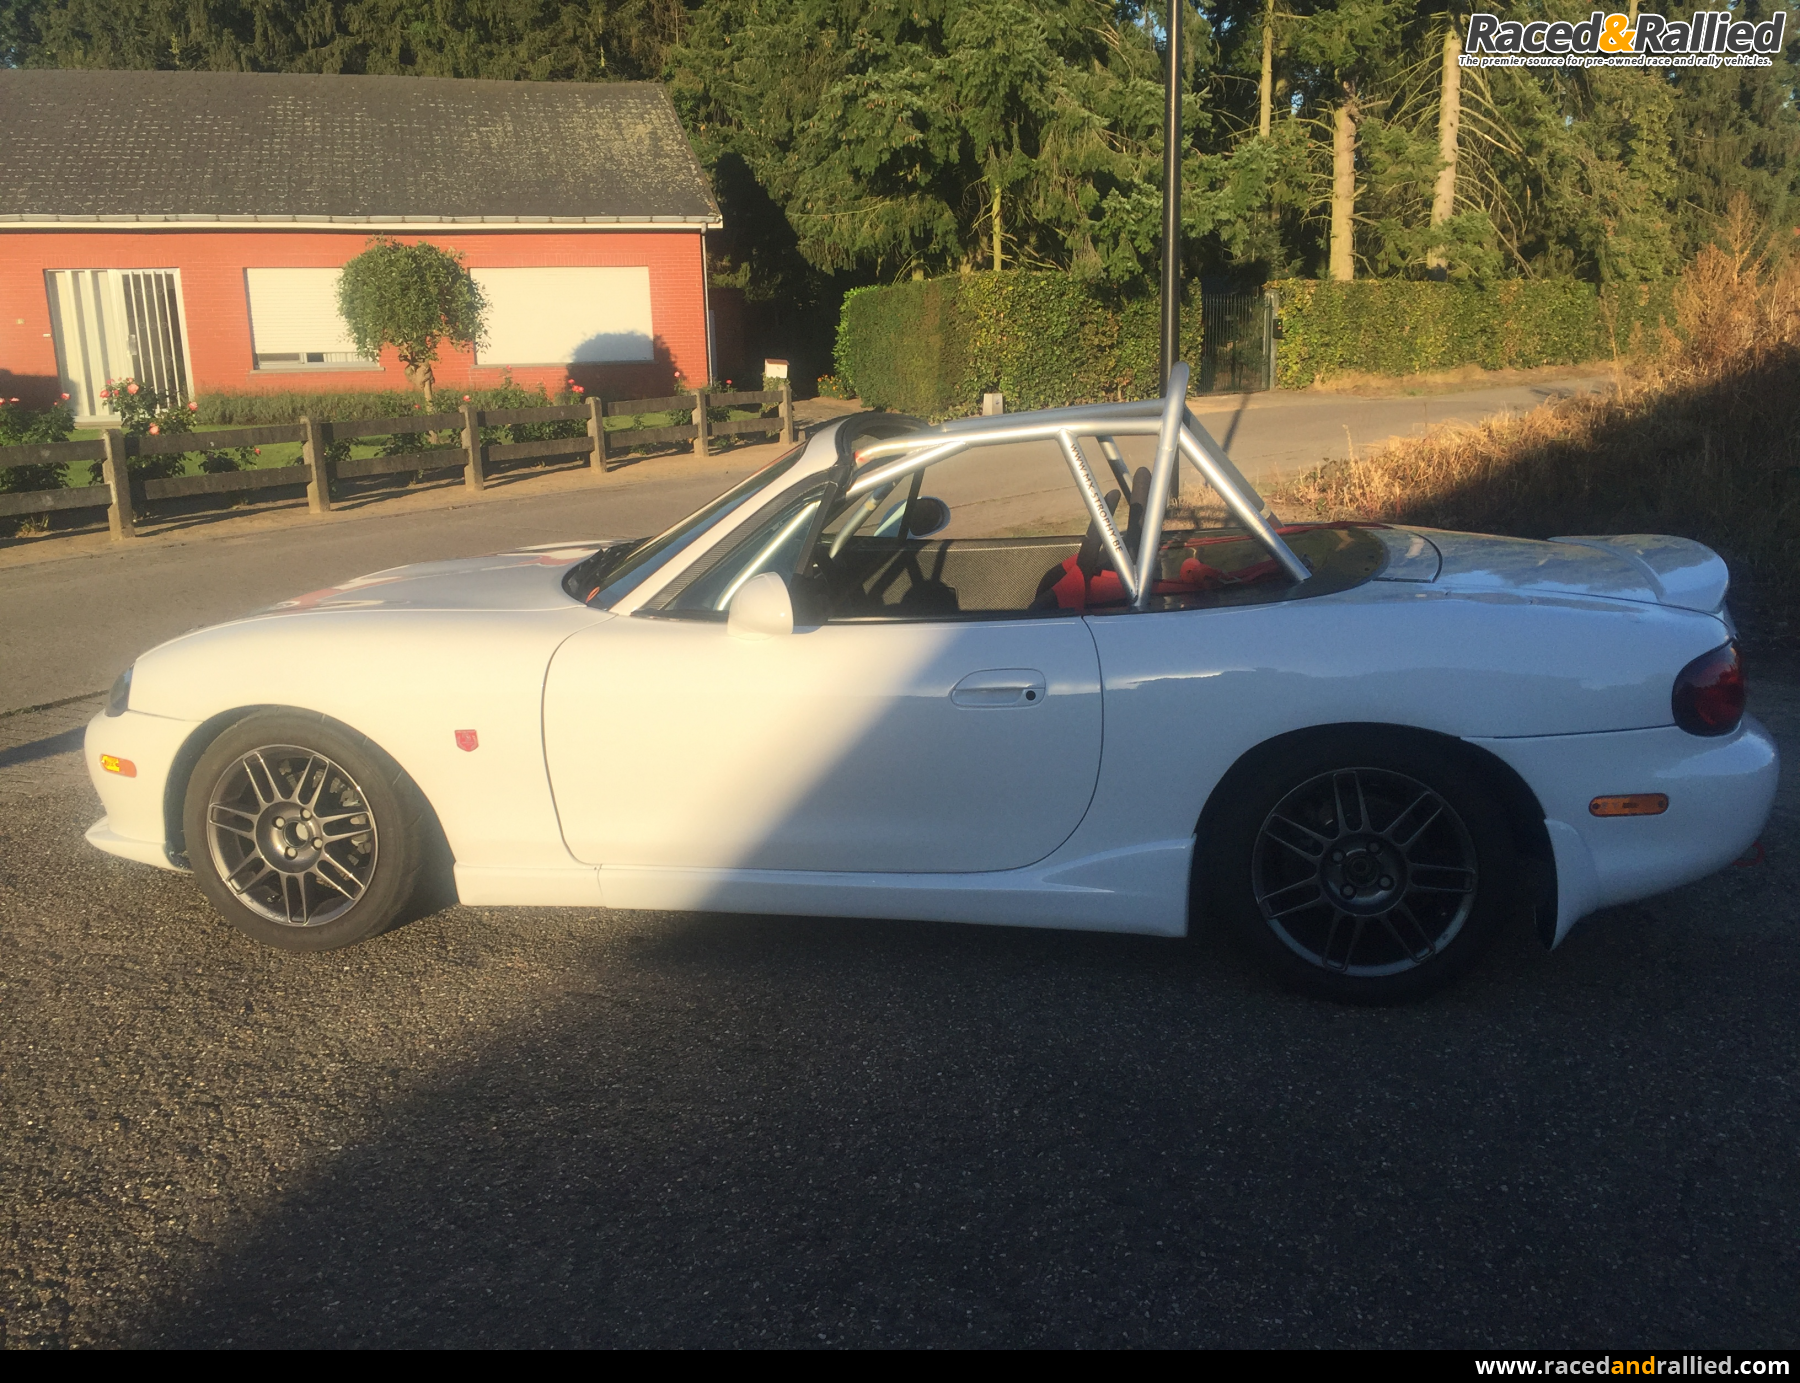 Mazda Mx5 Trophy Race Cars For Sale At Raced Rallied Rally